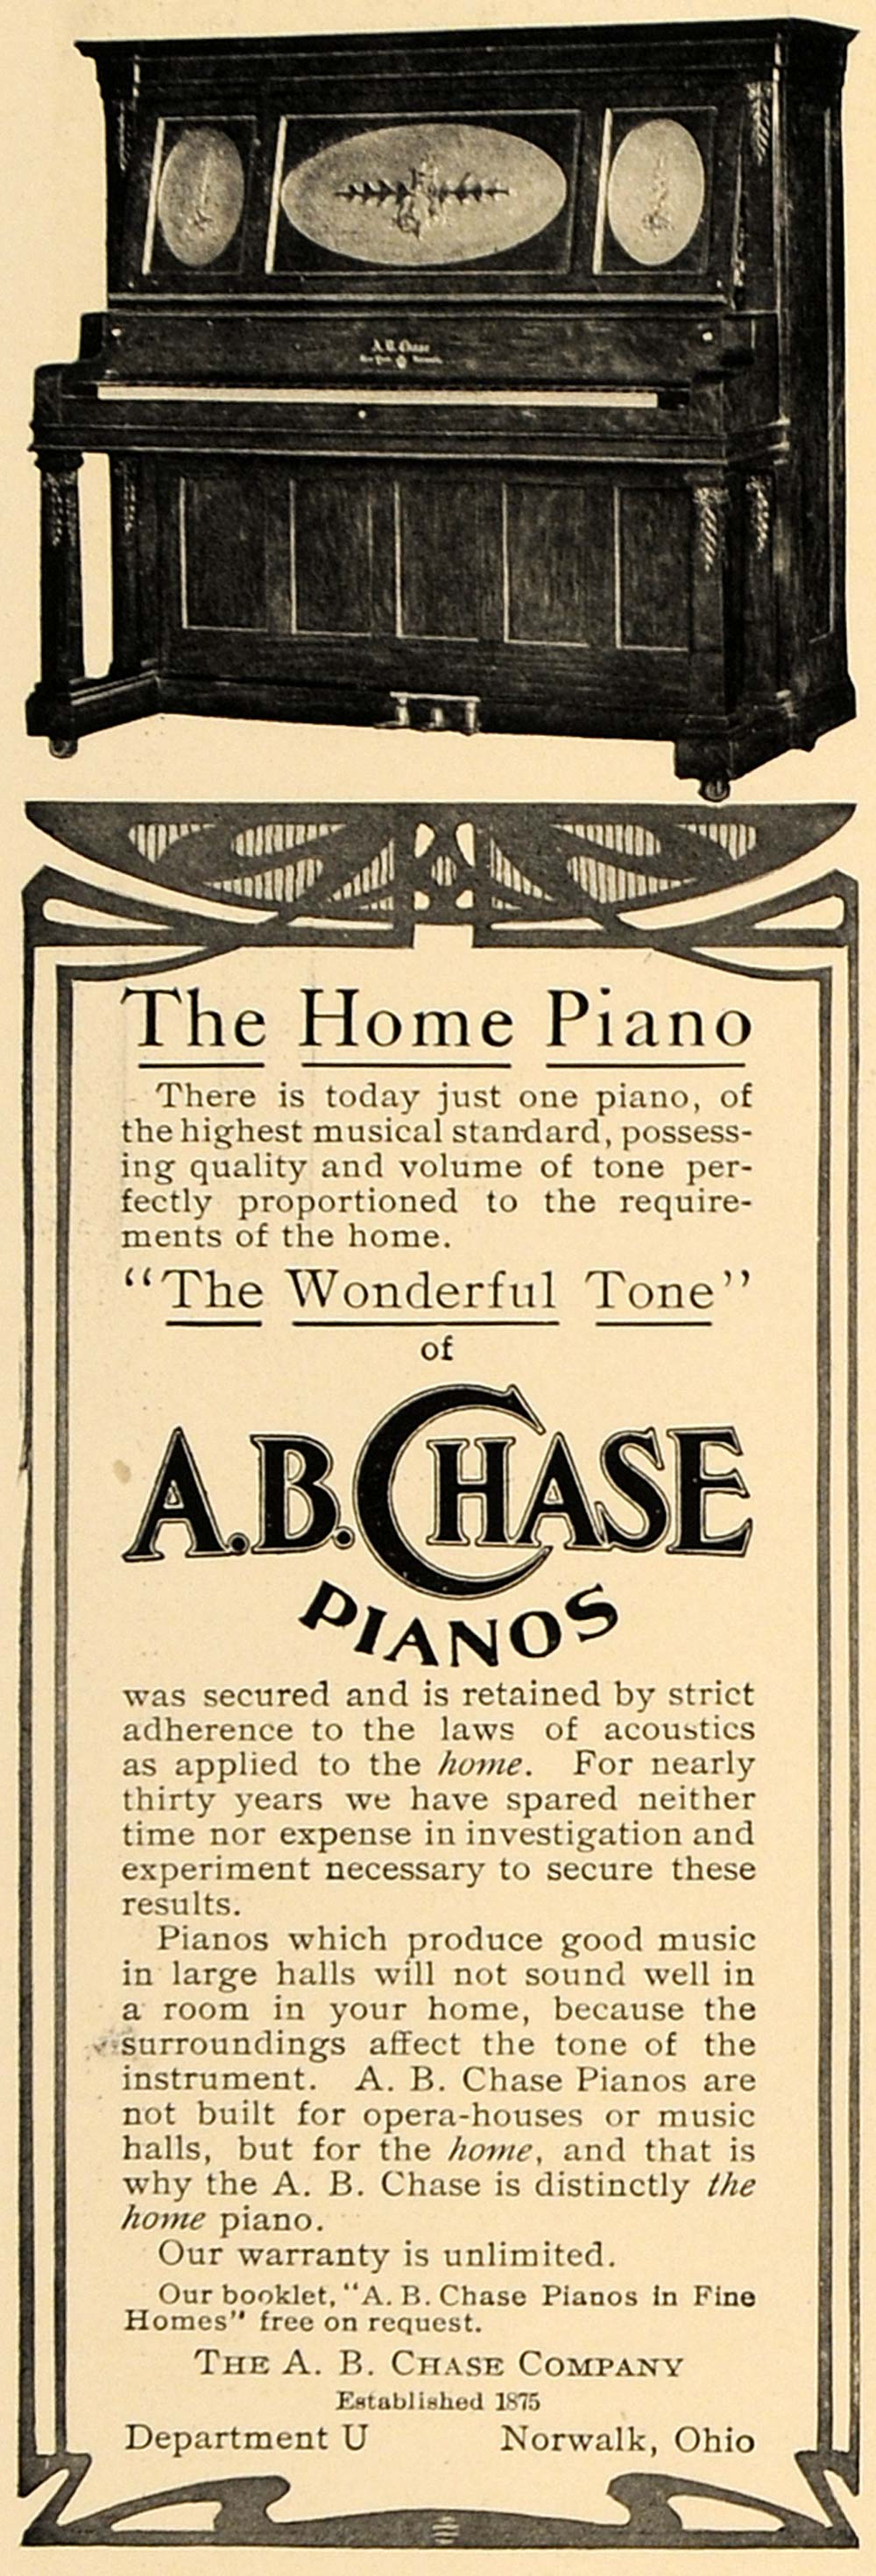 1906 Ad Antique A.B. Chase Home Pianos Norwalk Ohio - ORIGINAL ADVERTISING CL4